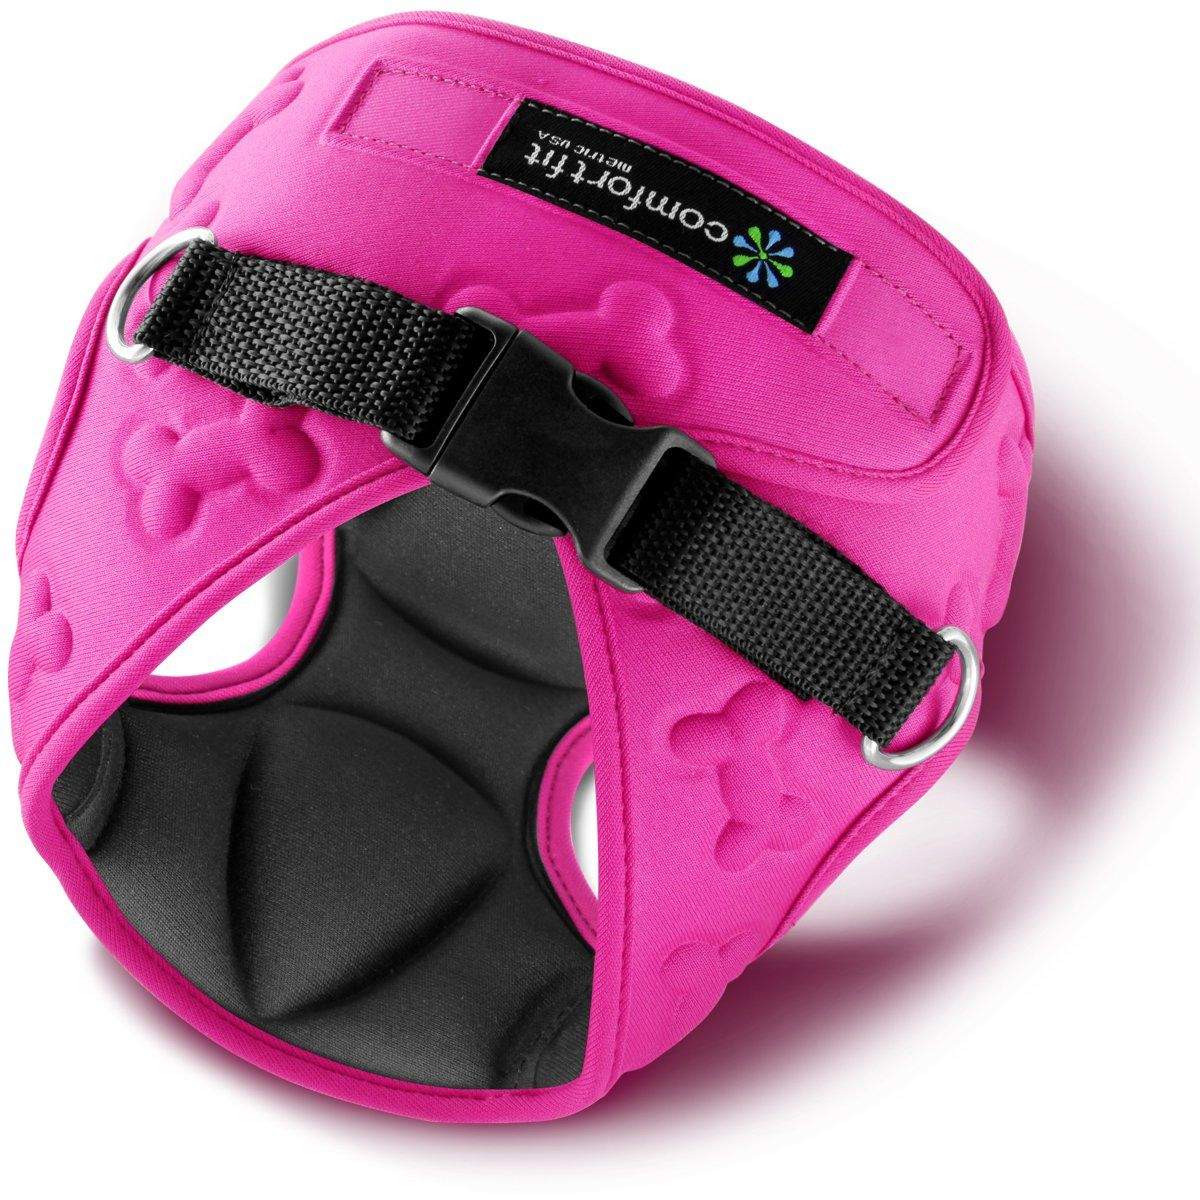 Small Dog Harness Pink Small dog harness, Puppy